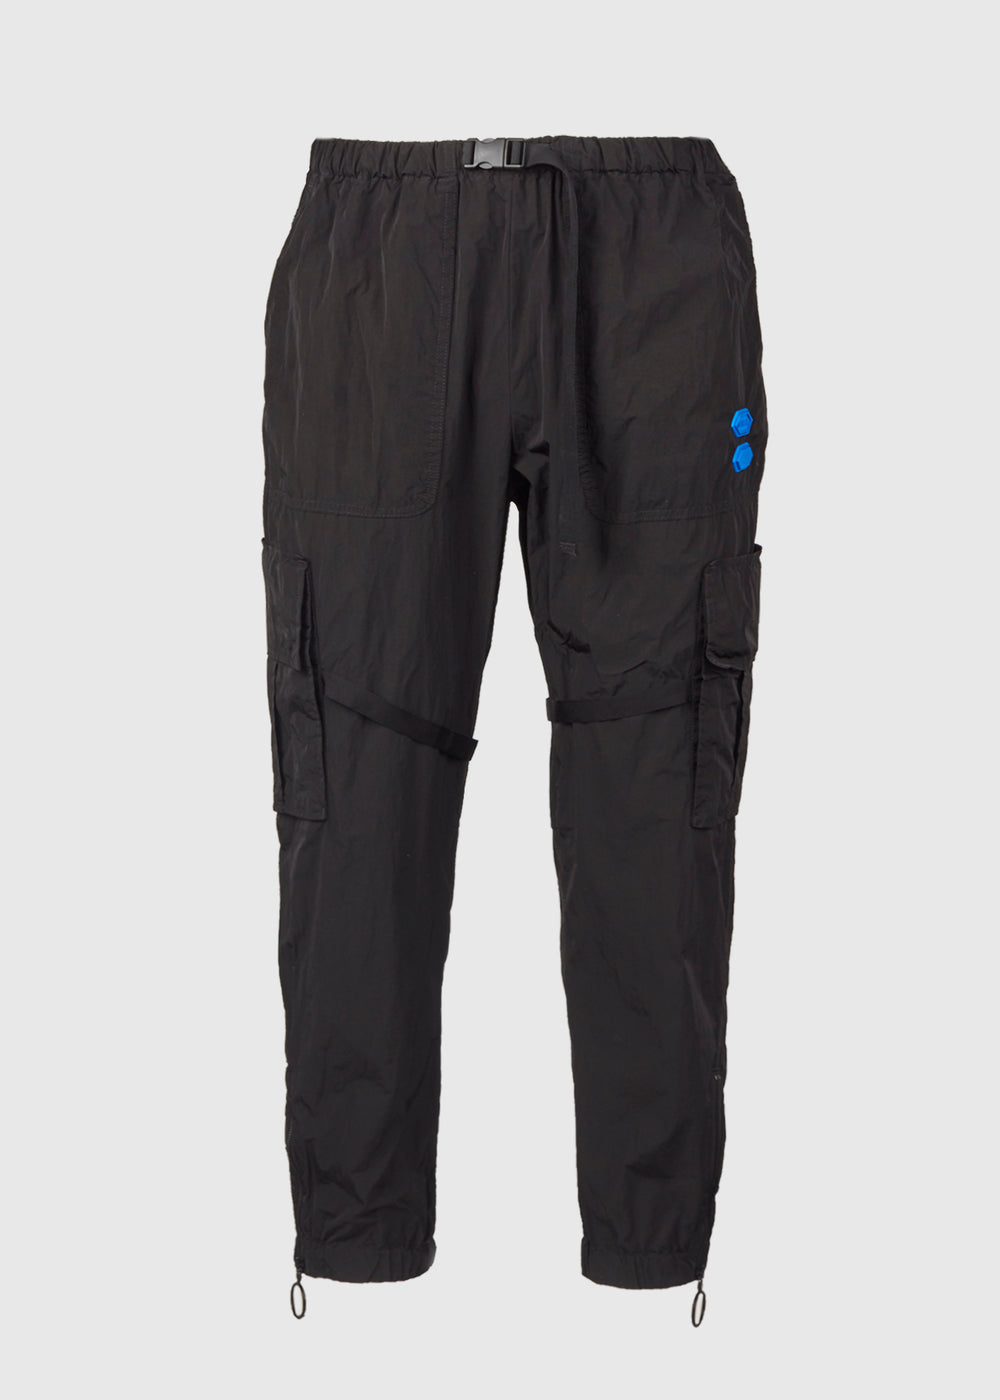 parachute-cargo-pant-omcf004f19f010201001-blk-1